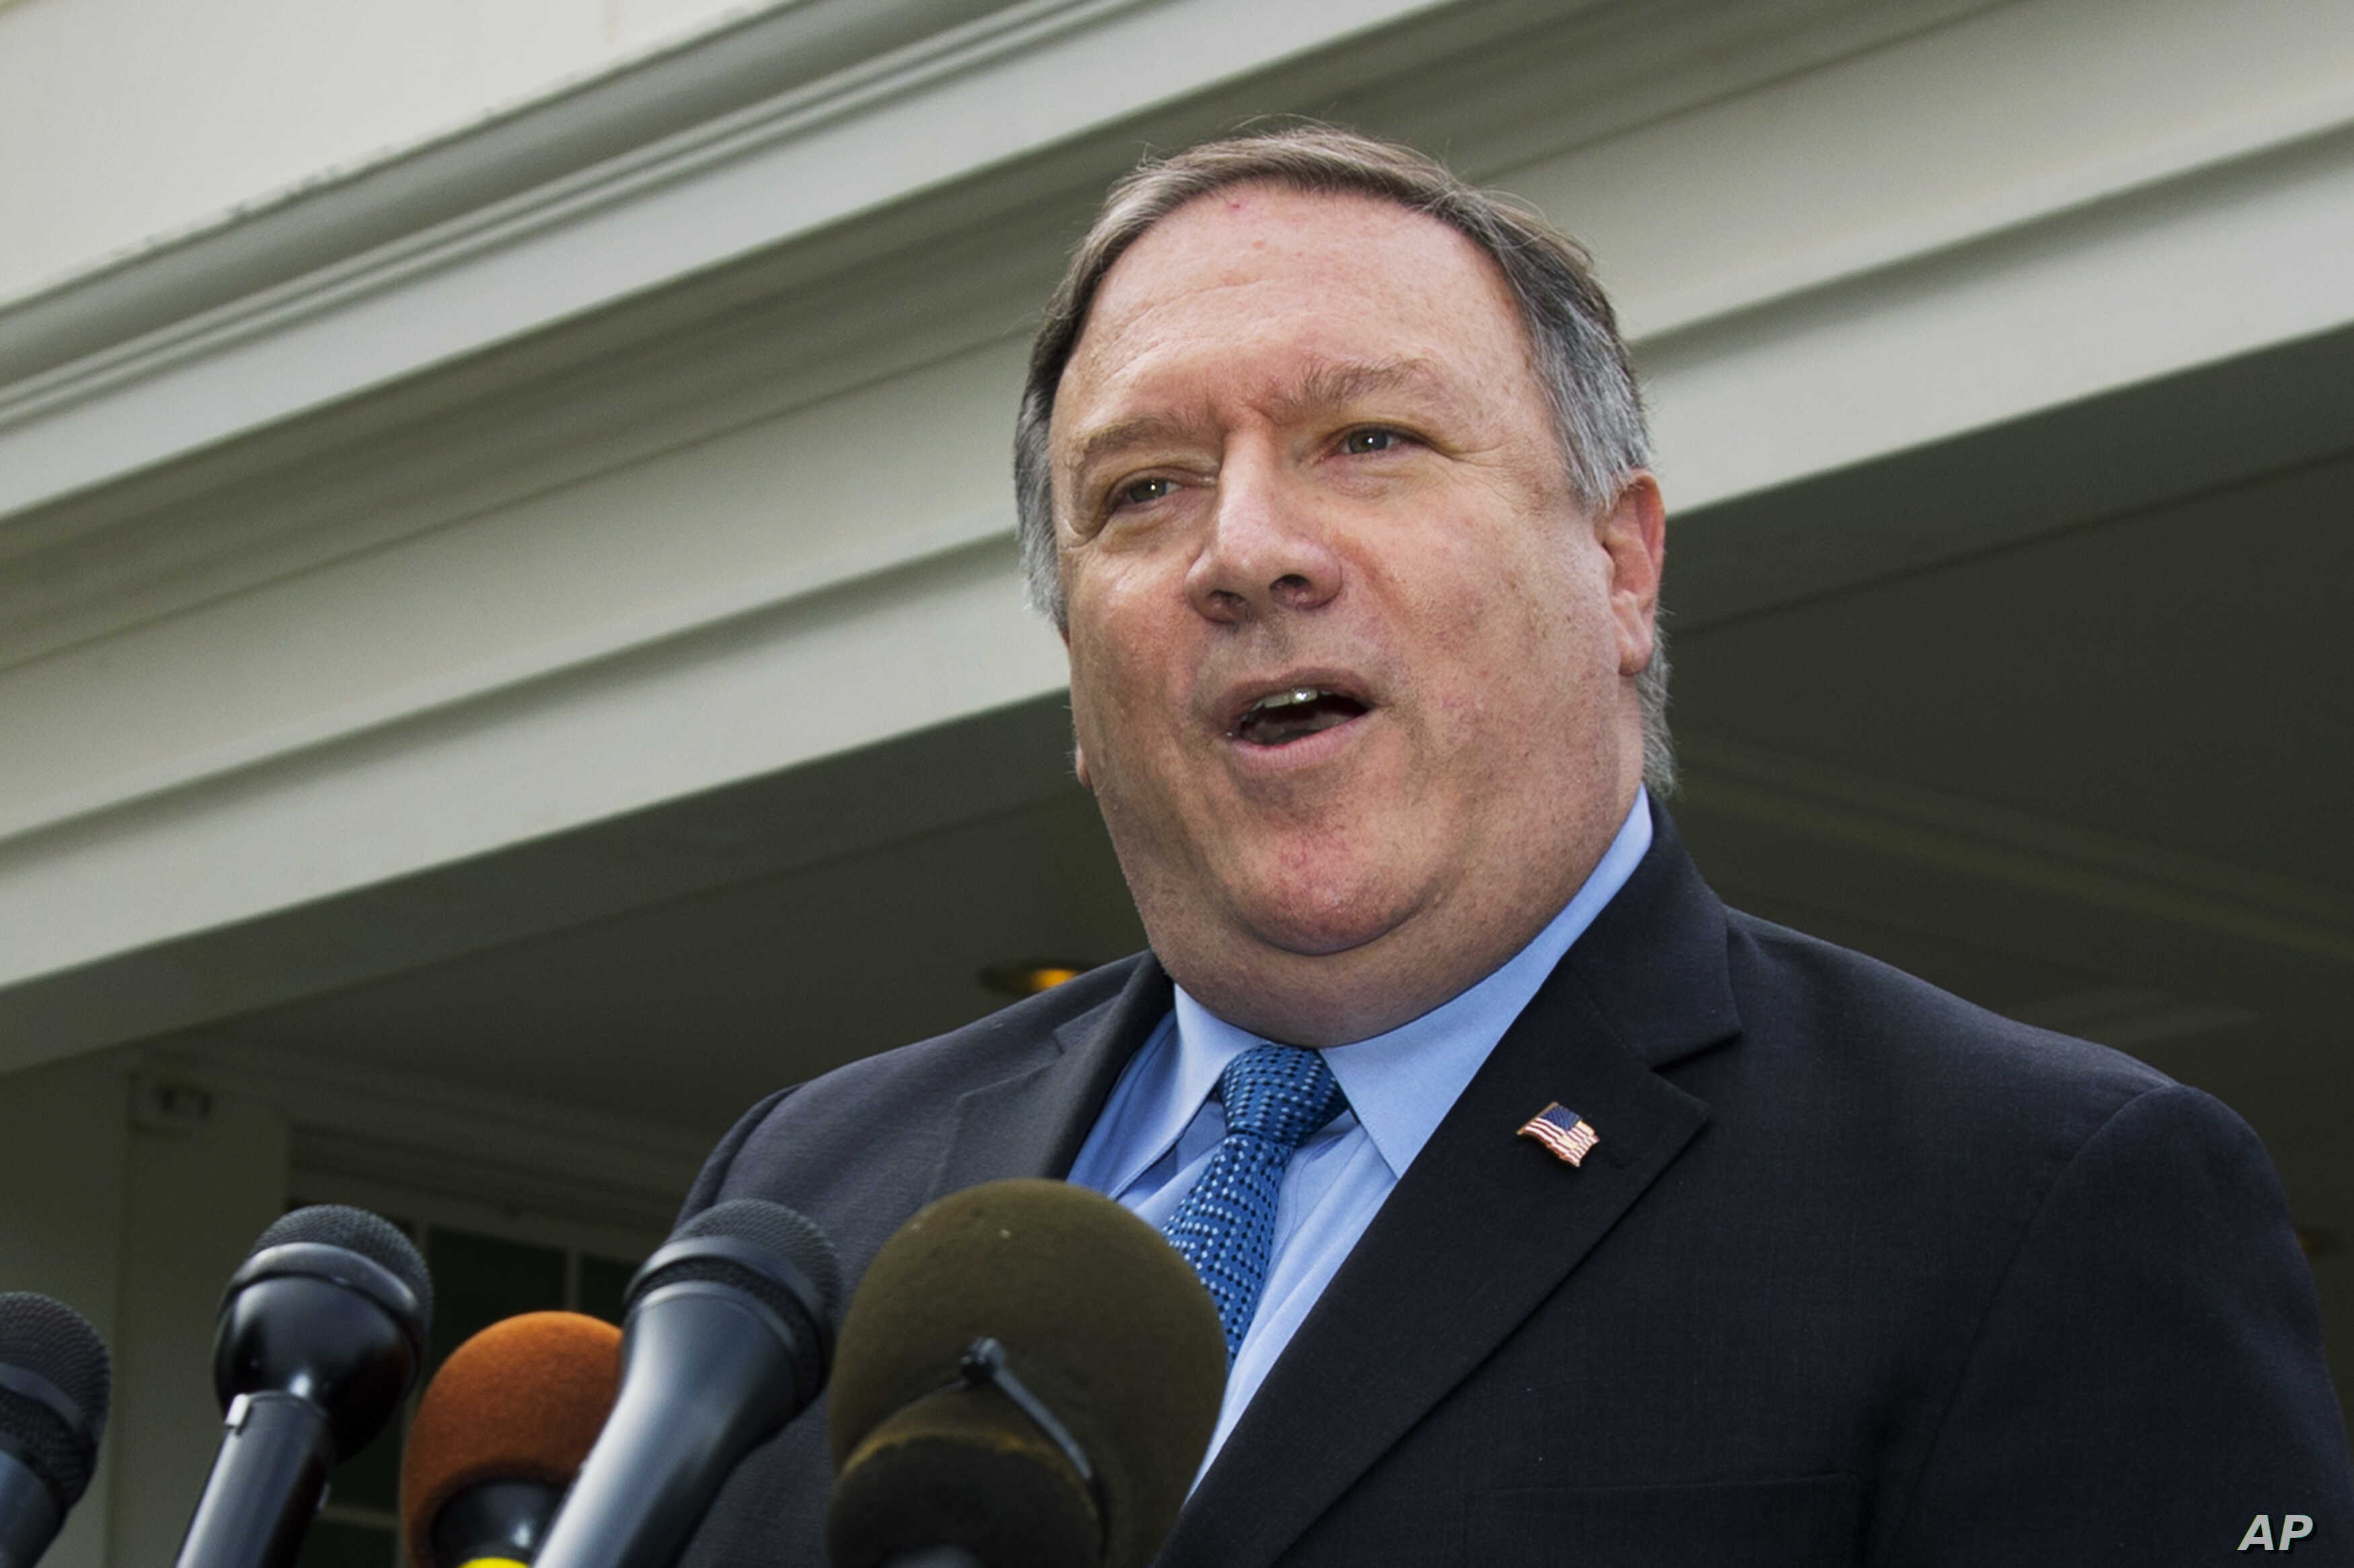 U.S. Secretary of State Mike Pompeo speaks to reporters outside the White House in Washington, Oct. 9, 2018.